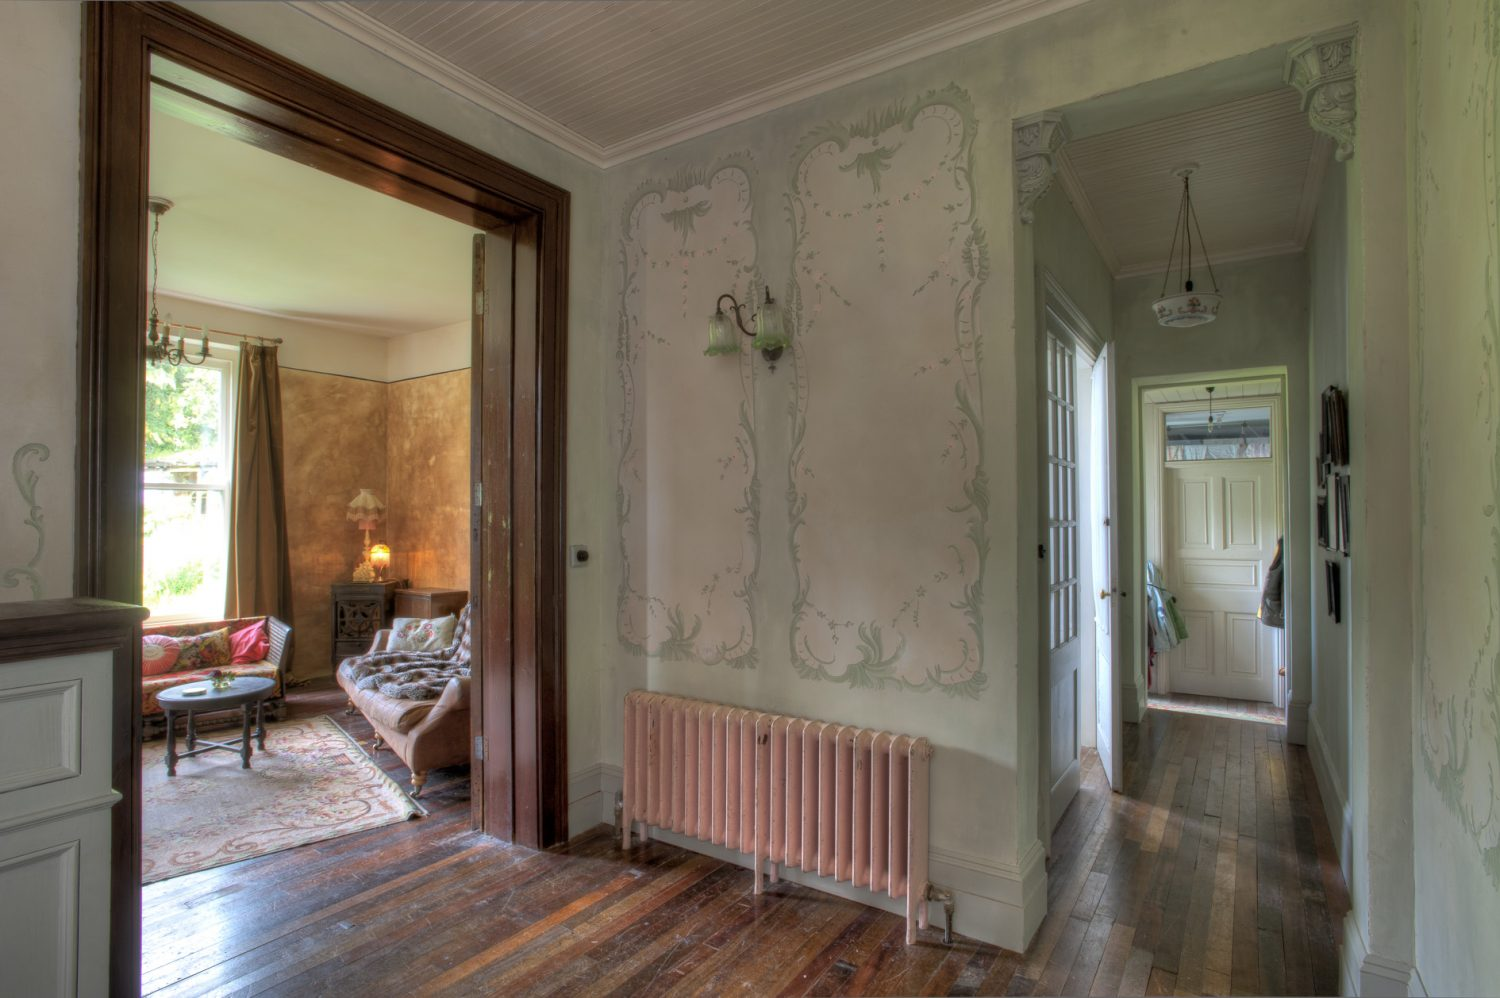 Susan's delicately painted trompe l'oeil wall panels are a striking feature throughout the house